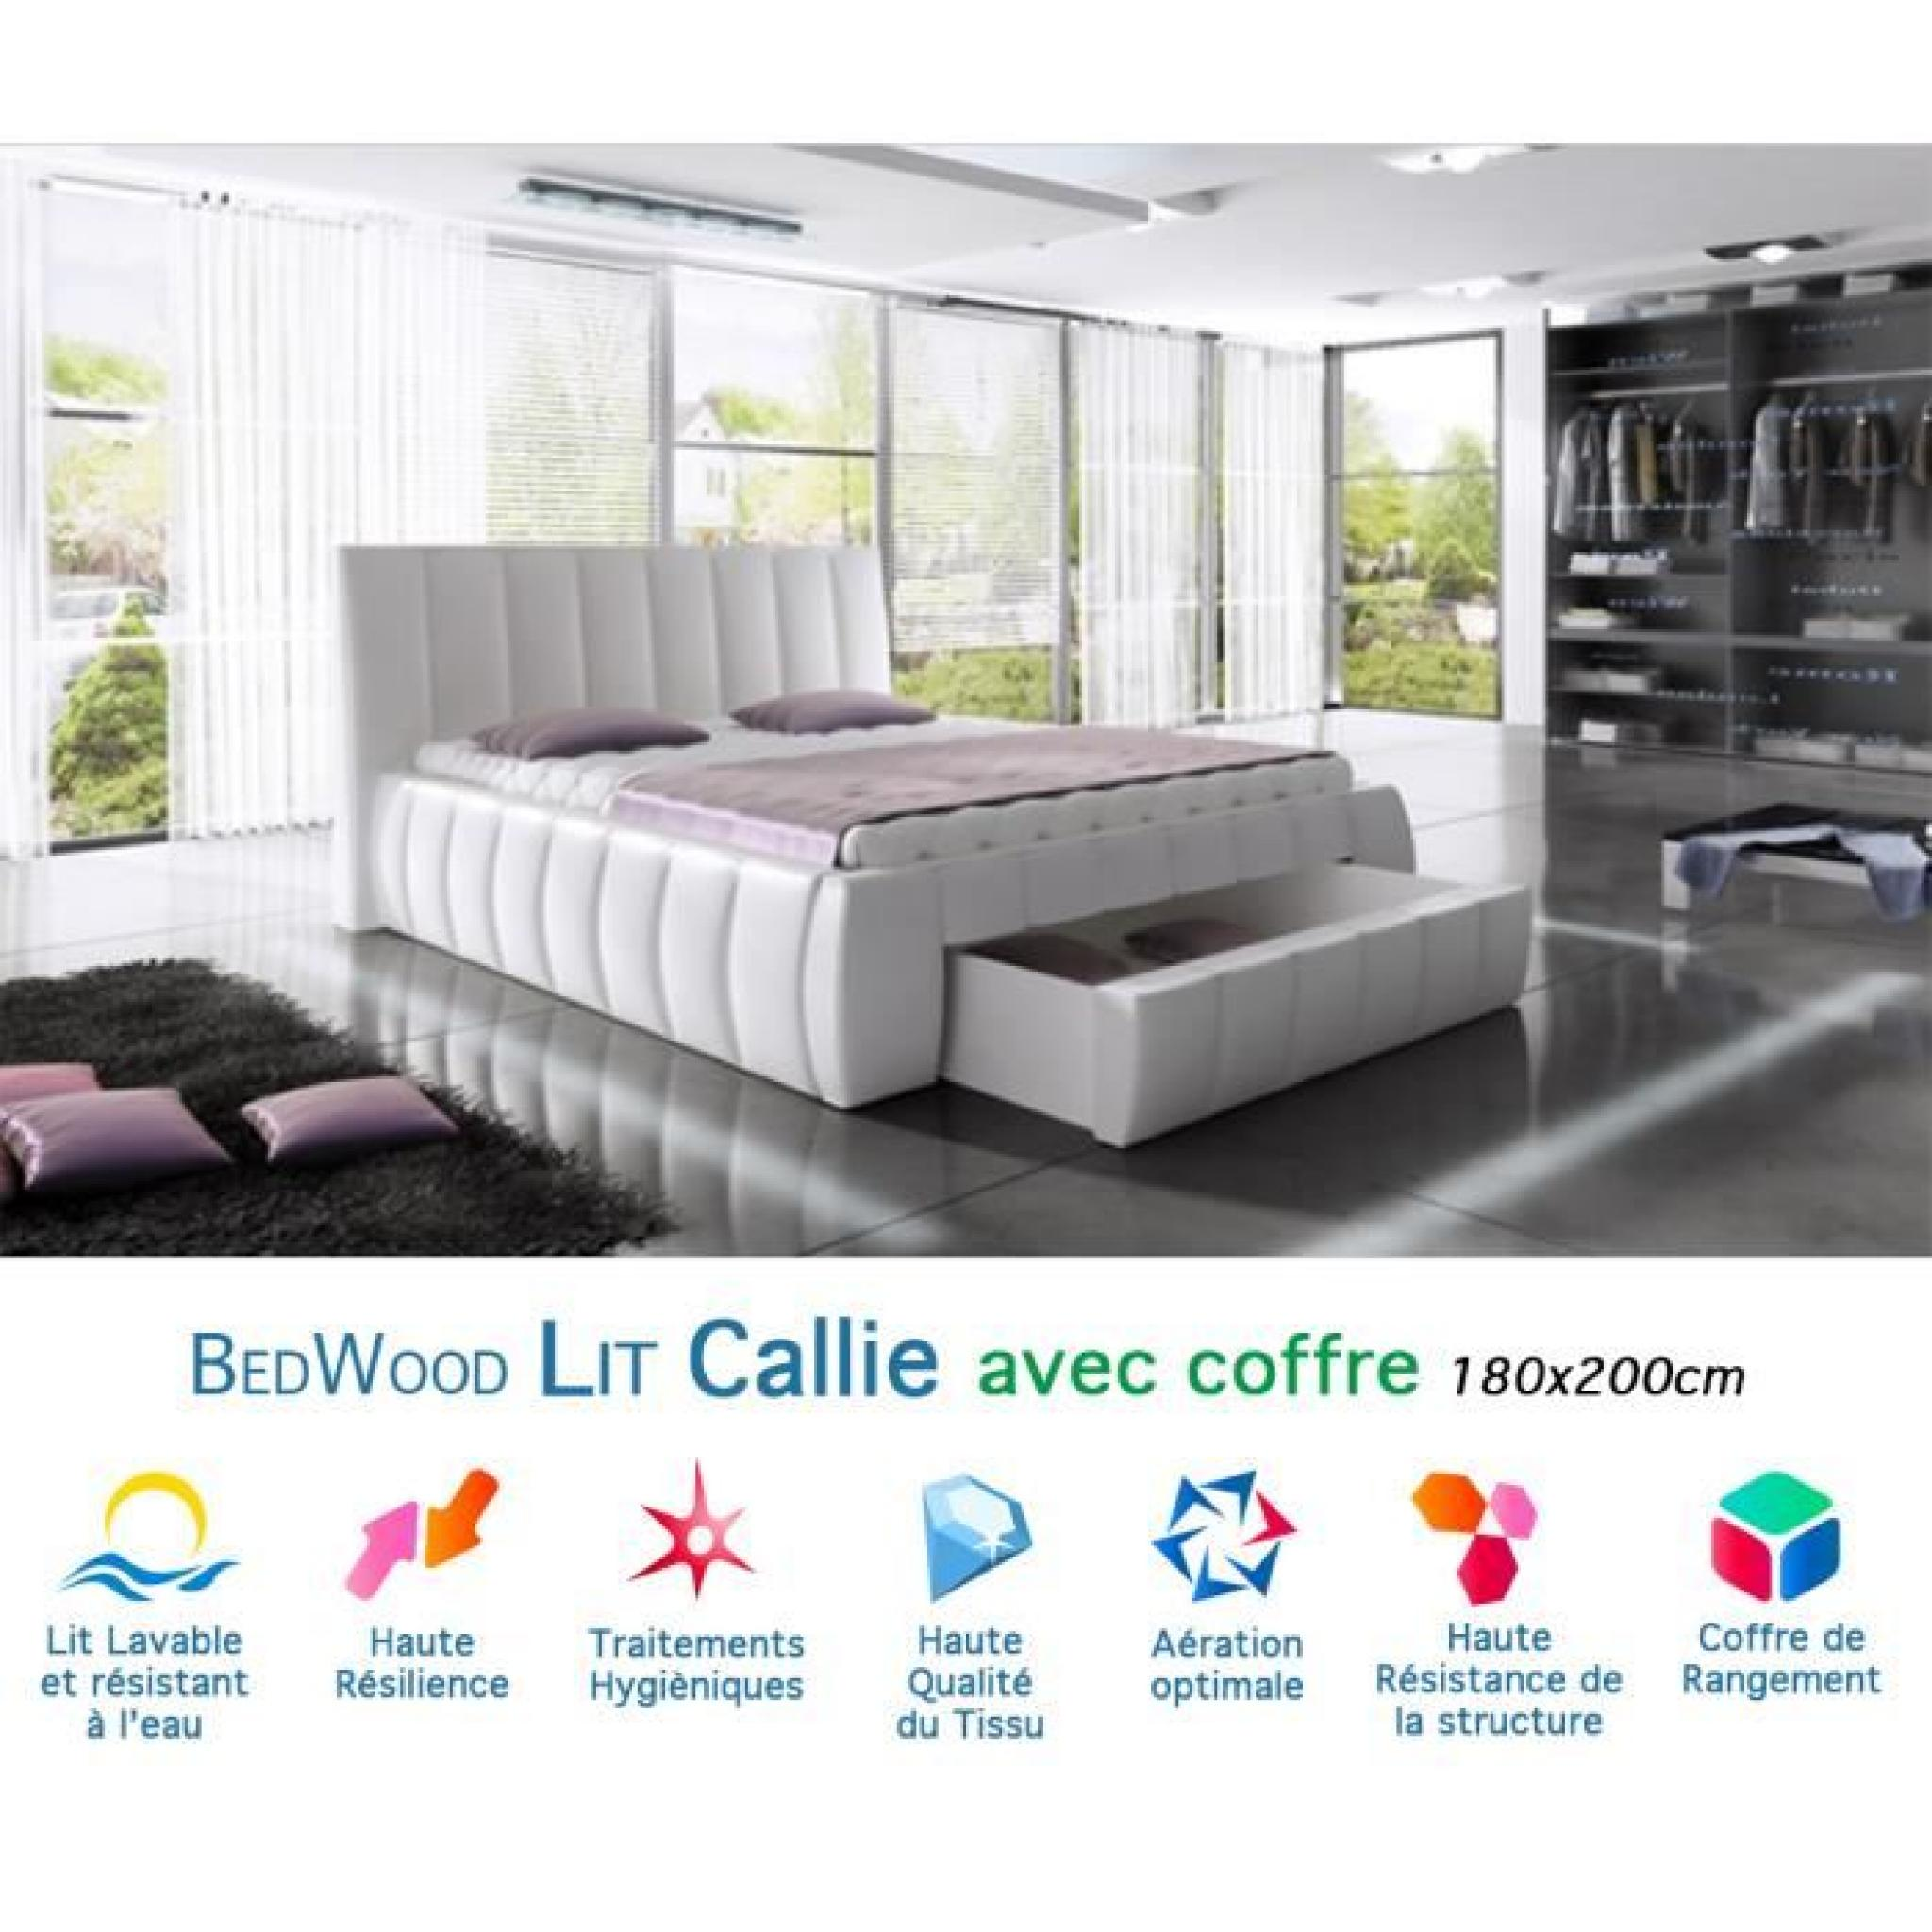 lit design avec coffre de rangement bedwood callie 140x200cm achat vente lit pas cher. Black Bedroom Furniture Sets. Home Design Ideas